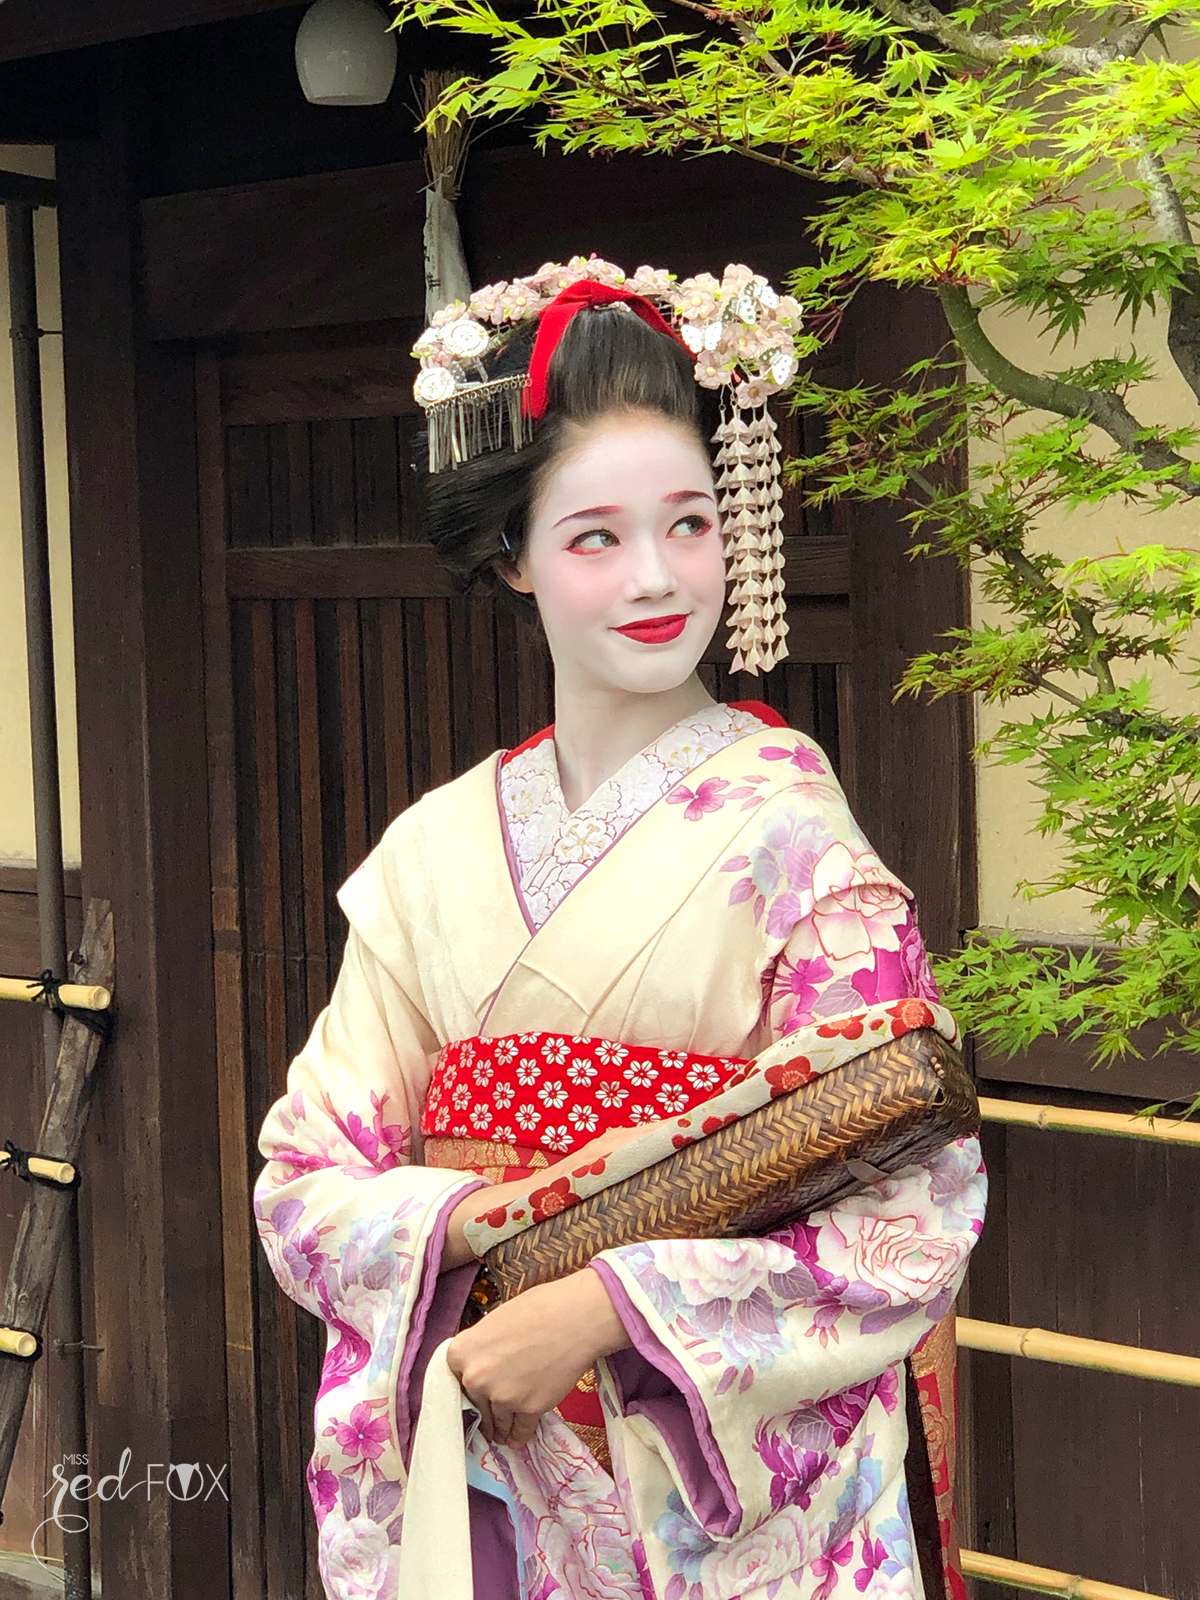 missredfox - Japan - Kyoto - 14